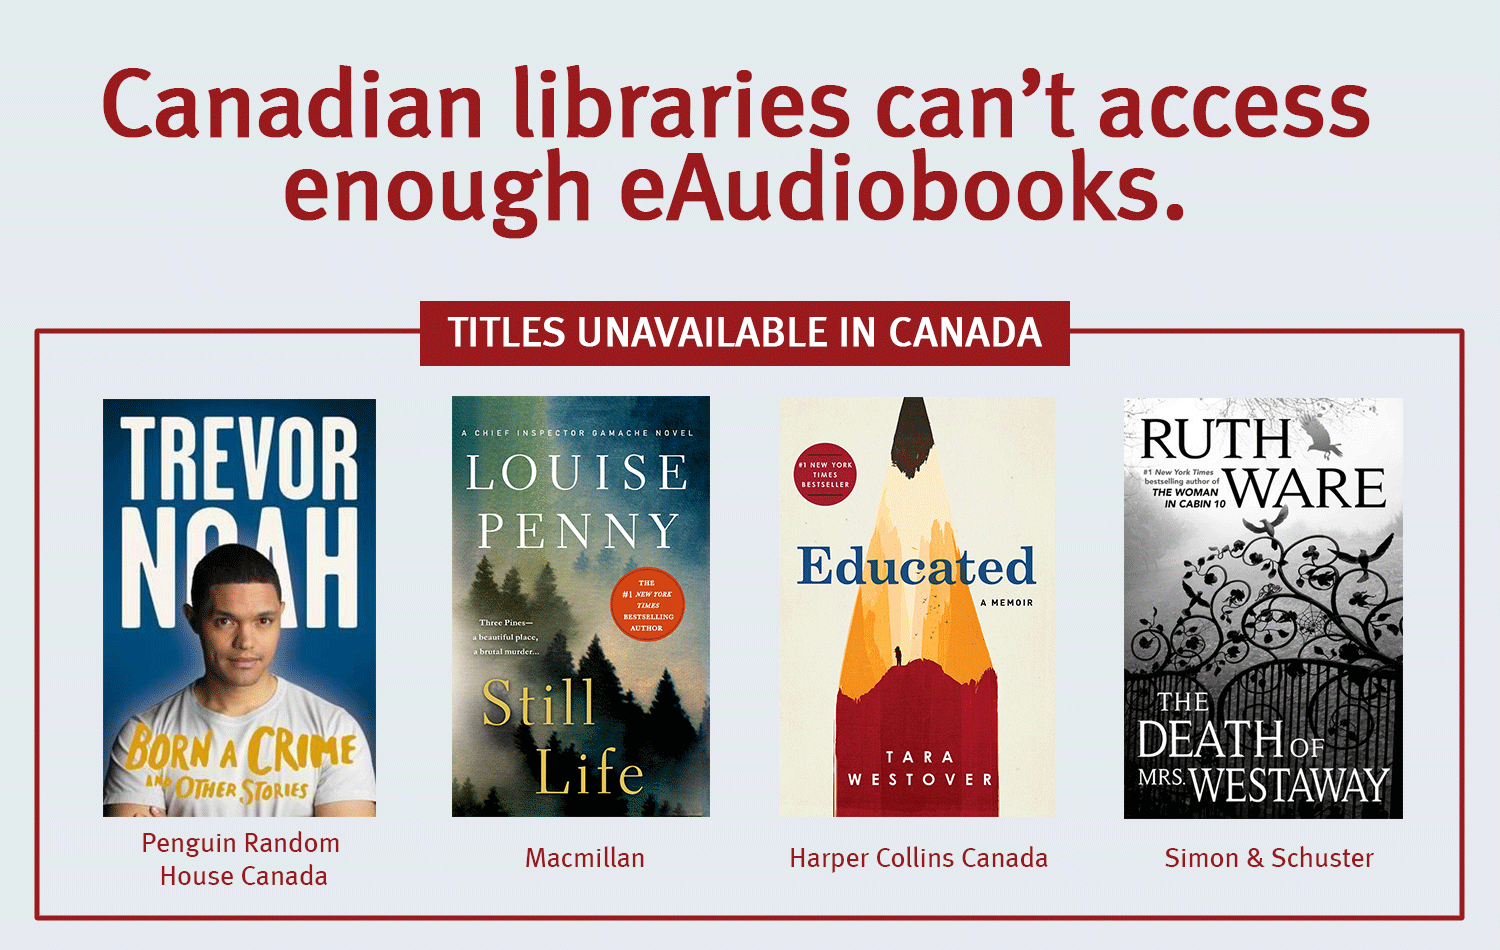 eContent Advocacy - Image - Canadian libraries can't access enough eAudiobooks